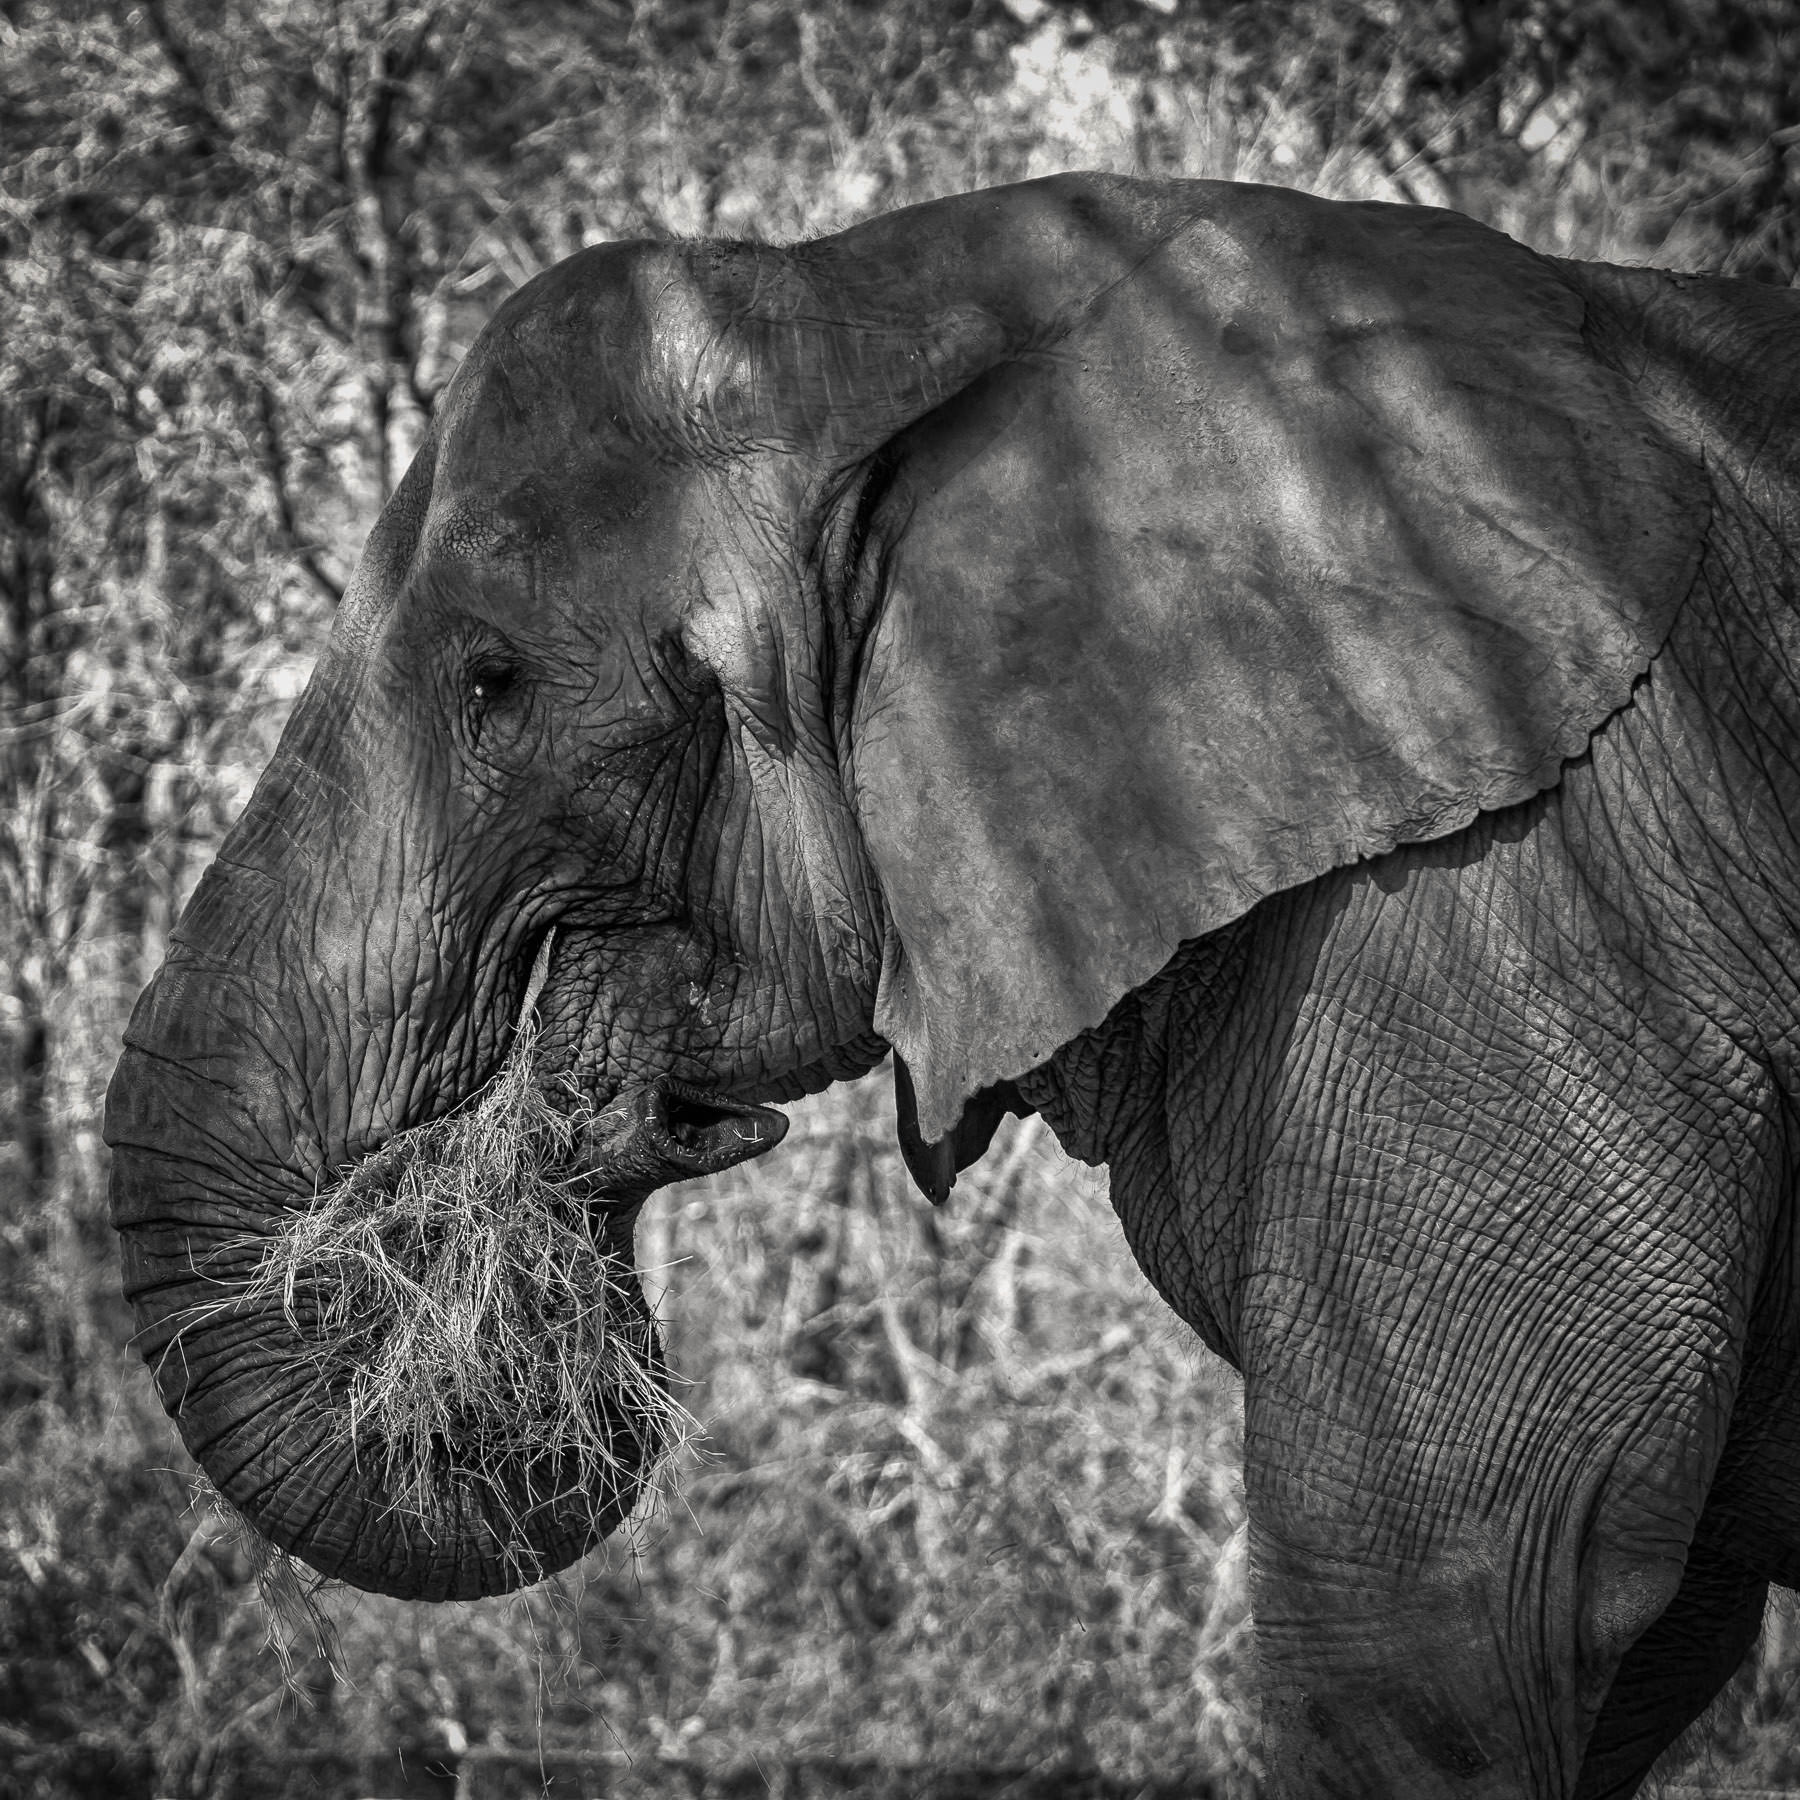 An elephant at Tyler, Texas' Caldwell Zoo enjoys a mouthful of hay.